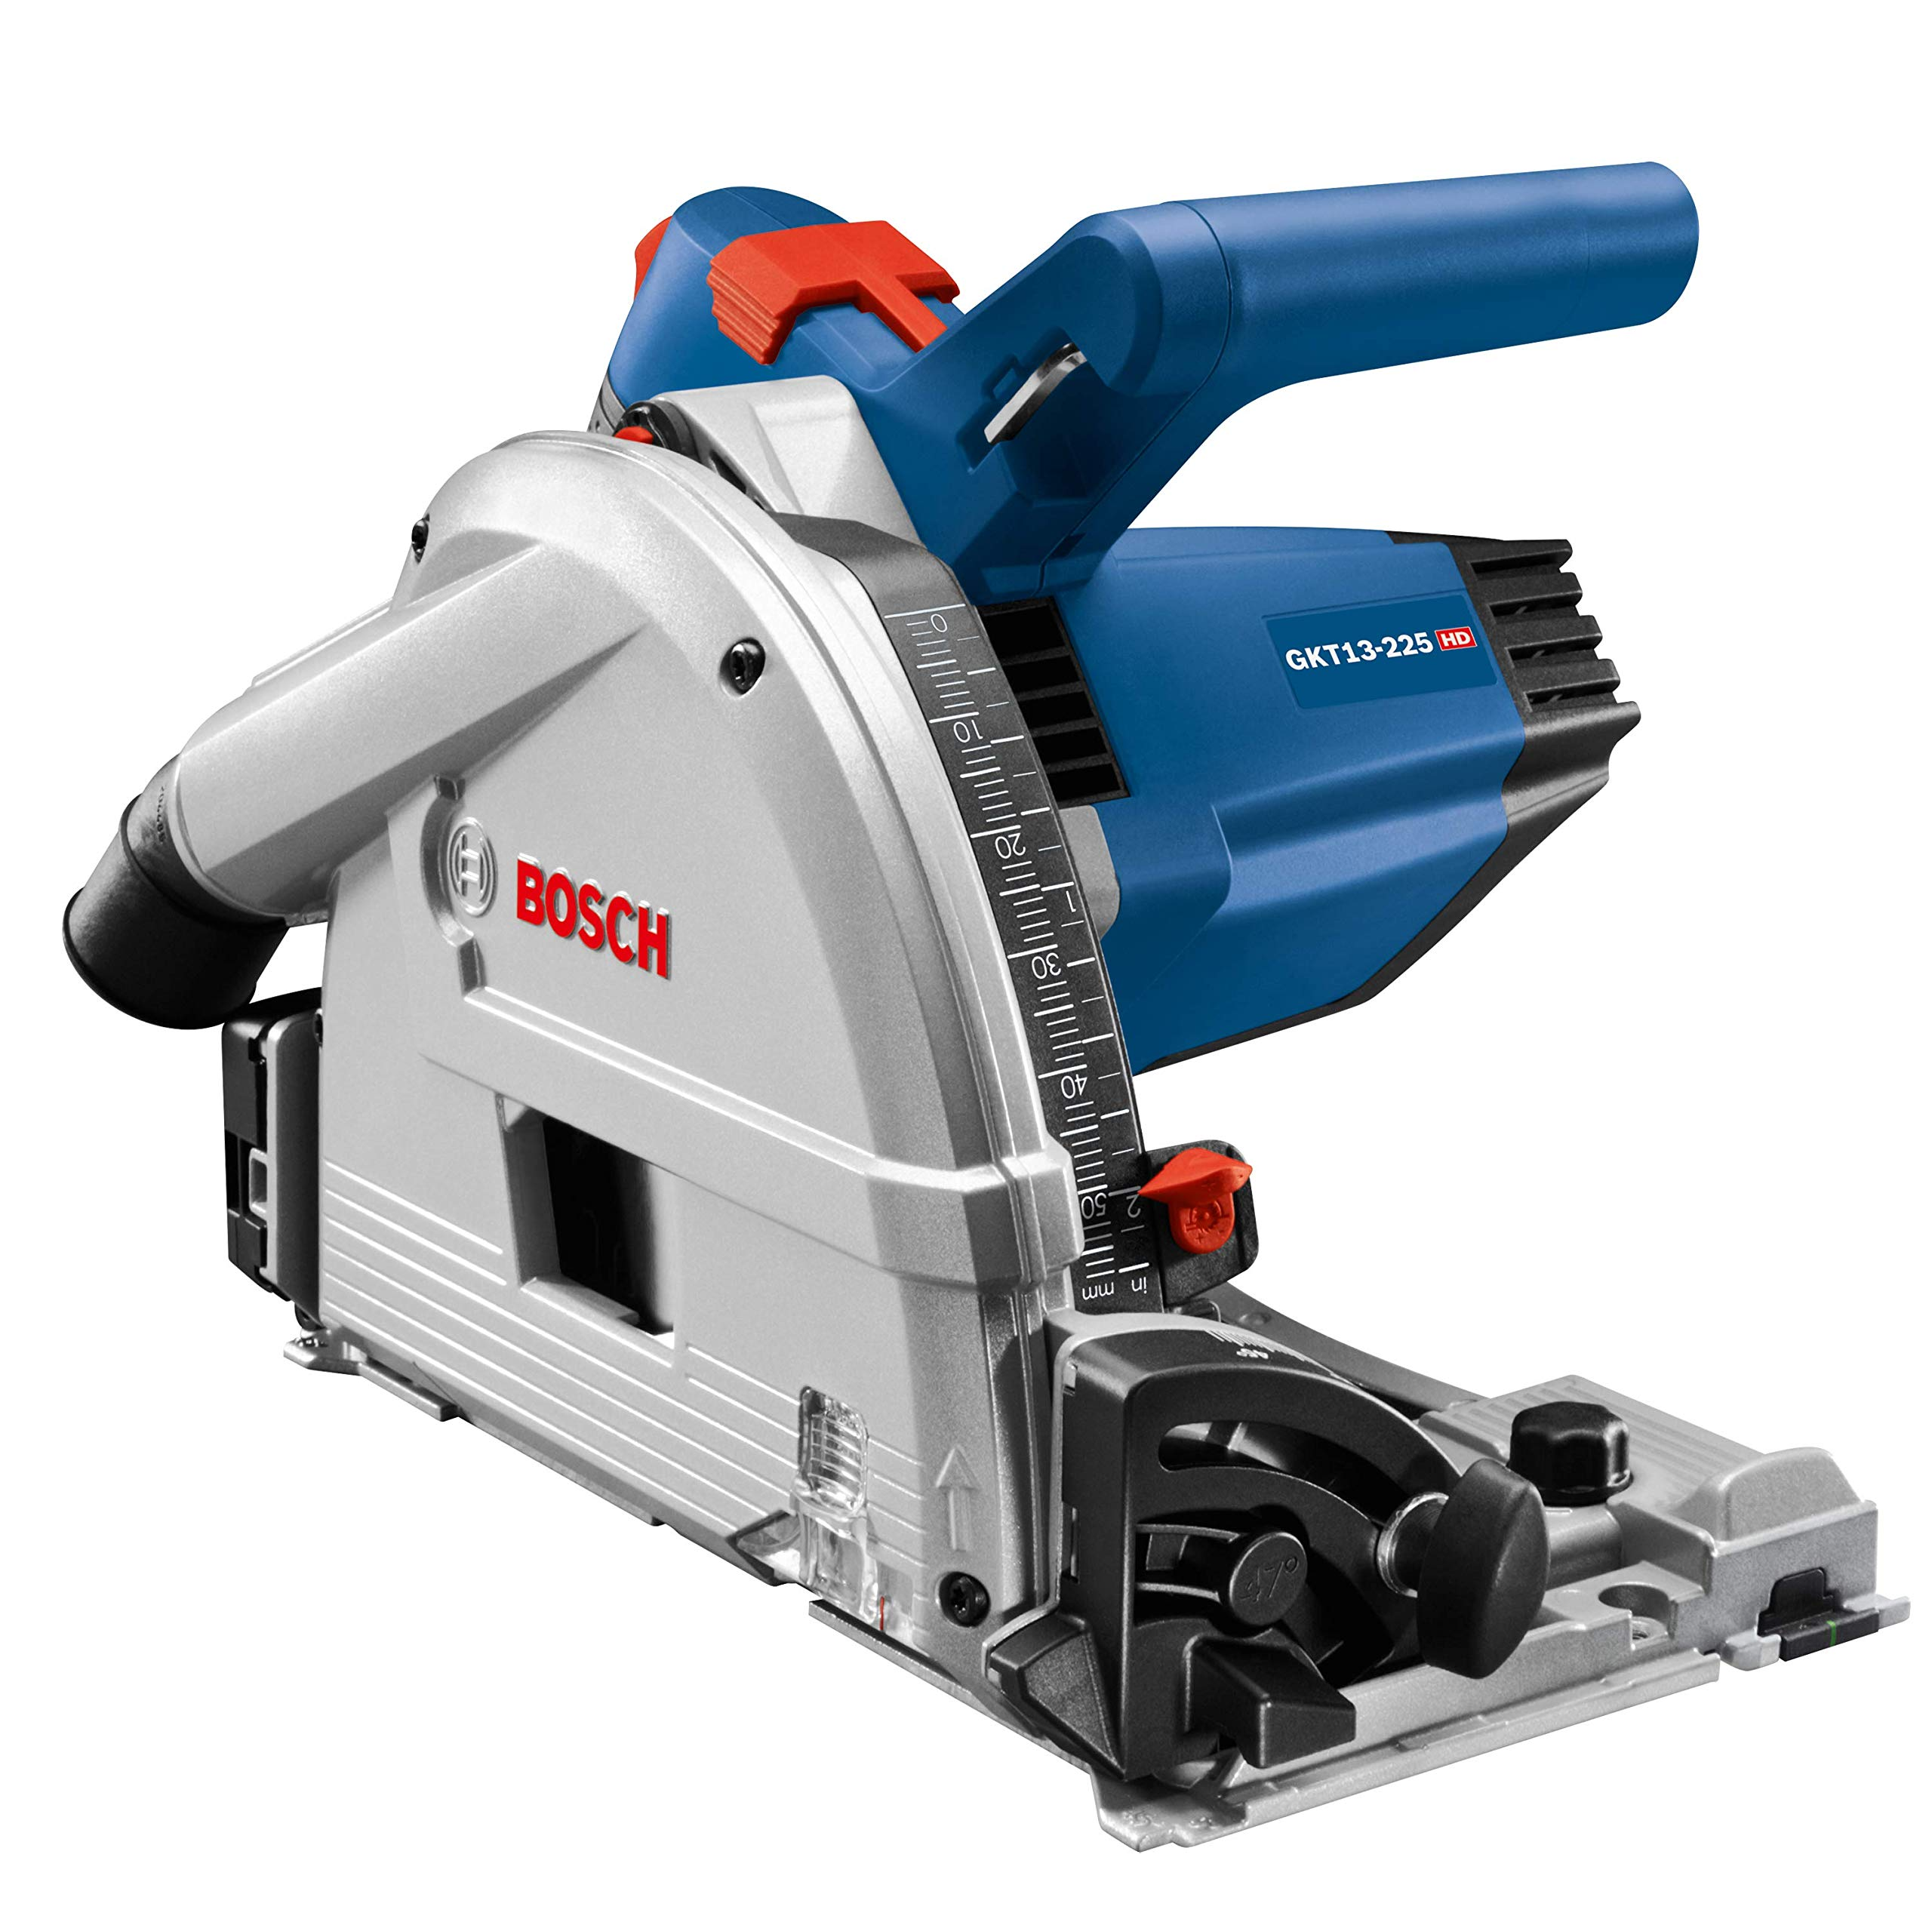 Bosch Tools Track Saw - GKT13-225L 6-1/2 In. Precison Saw with Plunge Action & Carrying Case by Bosch